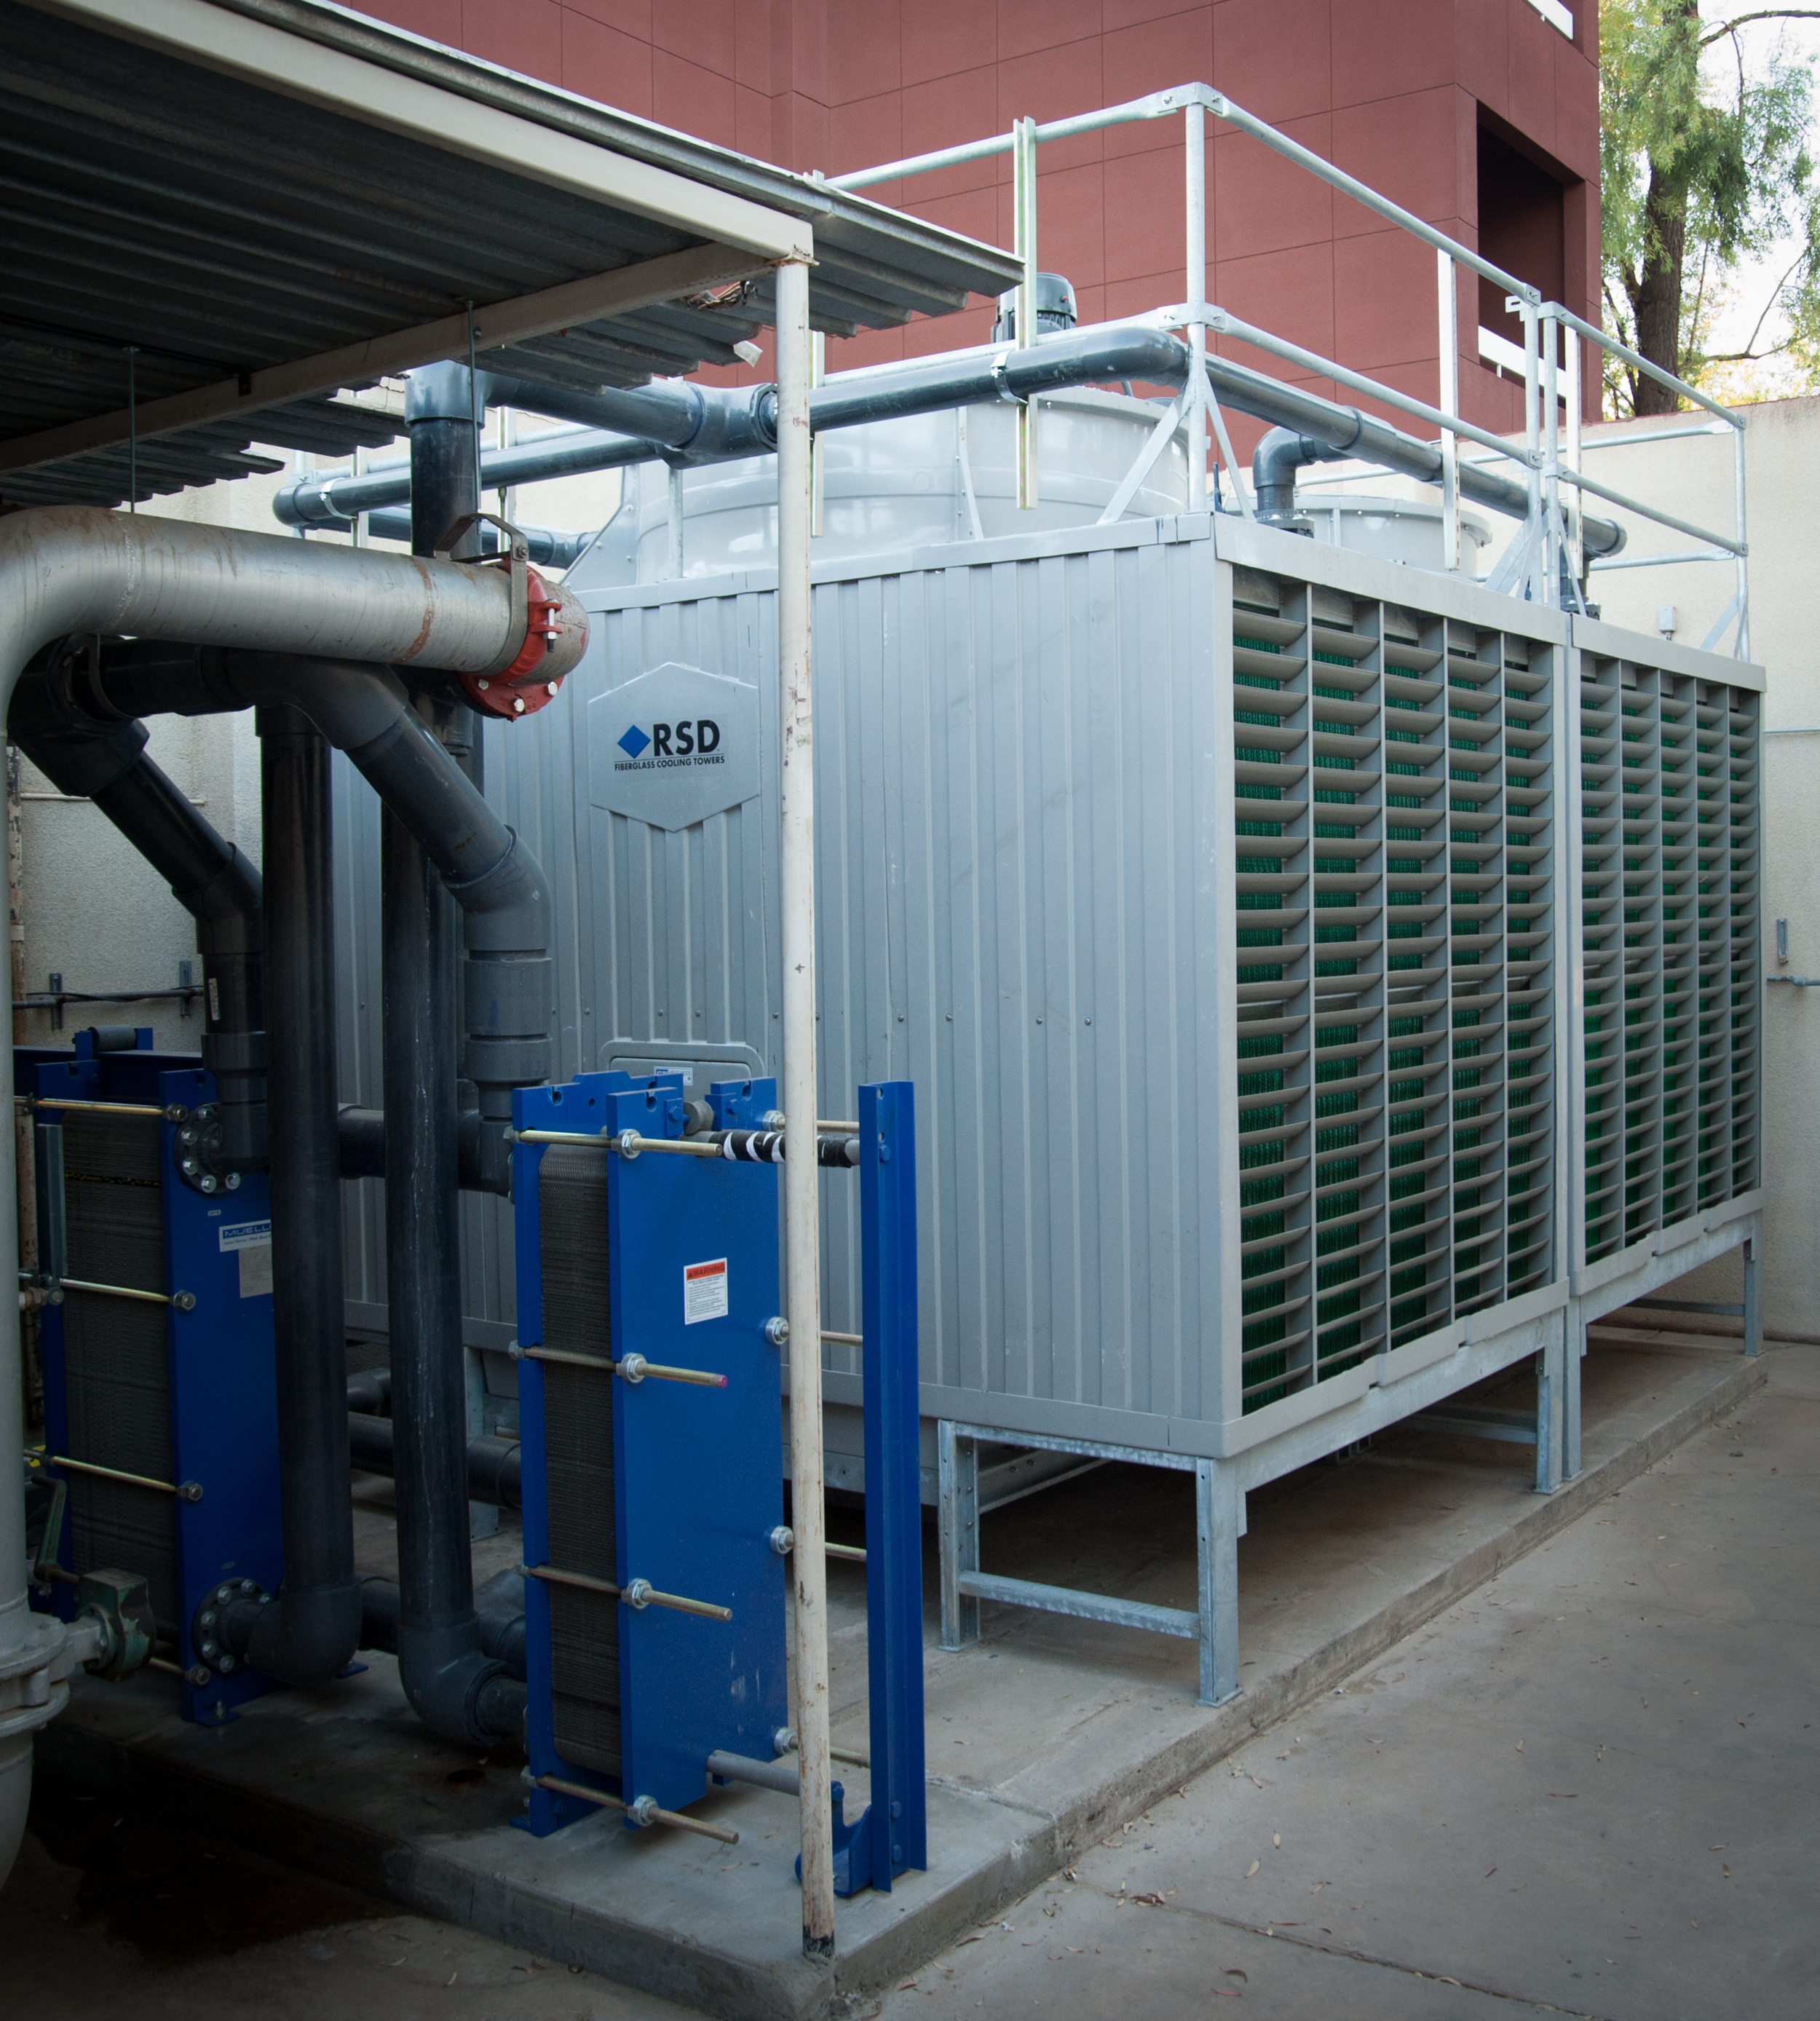 Chillers, Cooling Towers, Fluid Coolers, Boilers, Water Source Heat Pumps